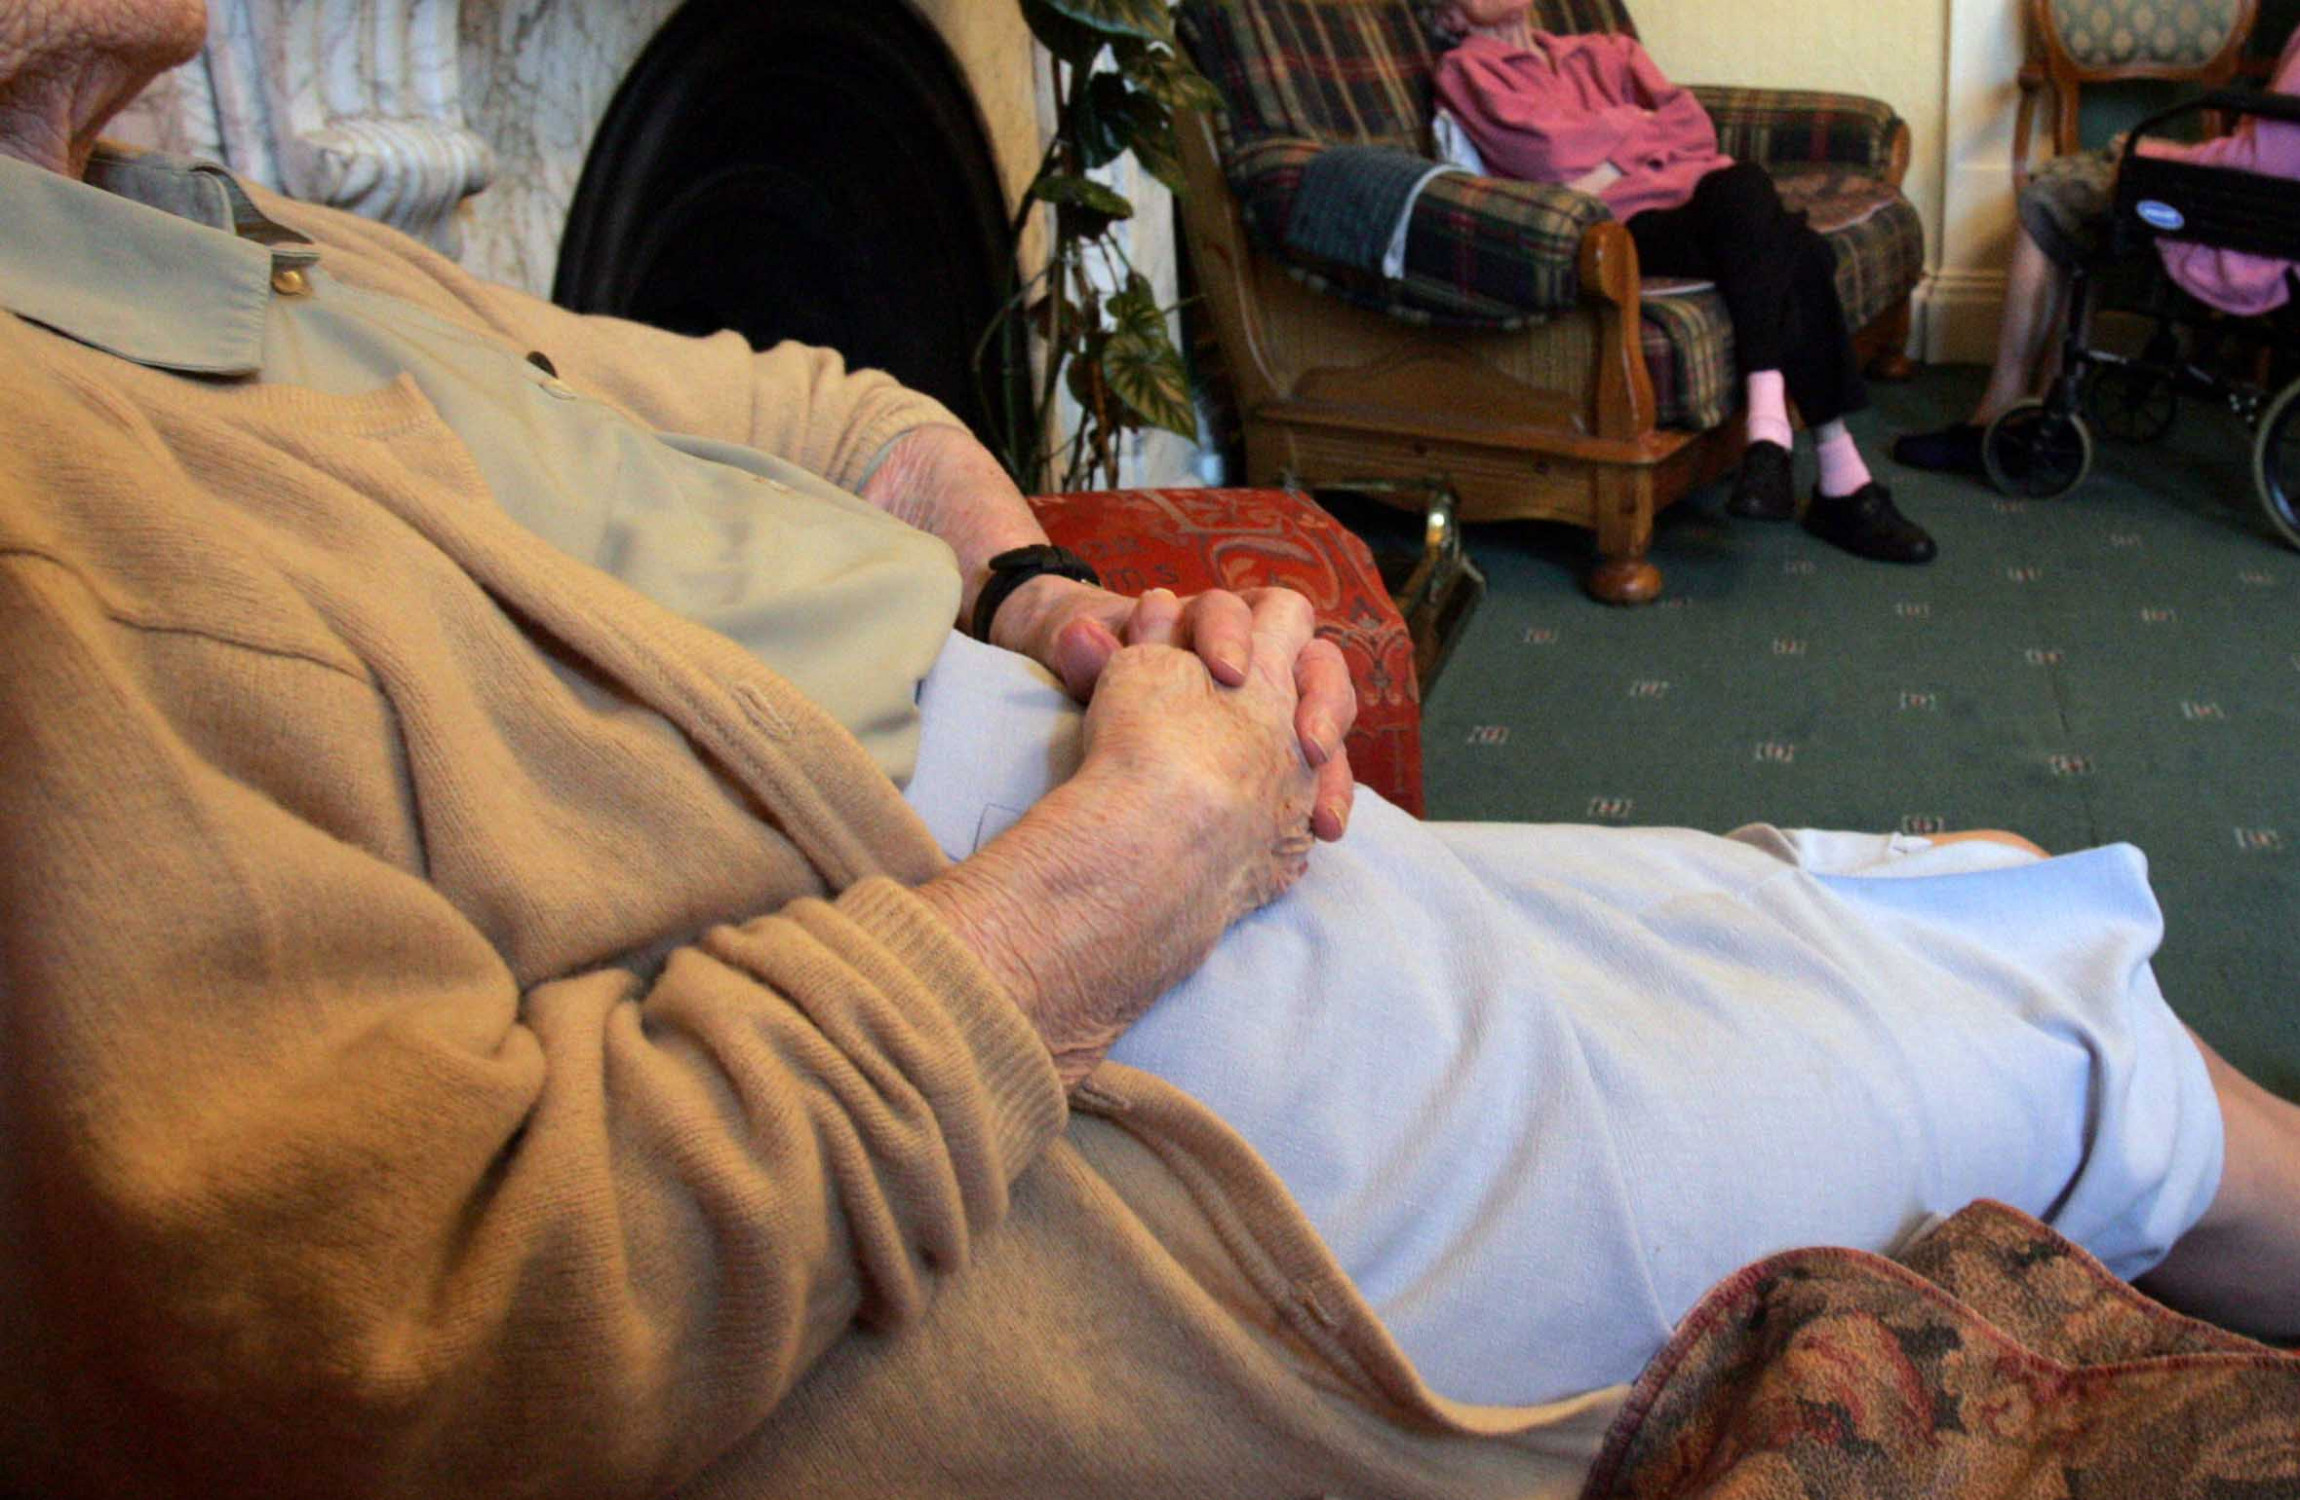 Weekends More Fatal for Older Patients with Head Injury